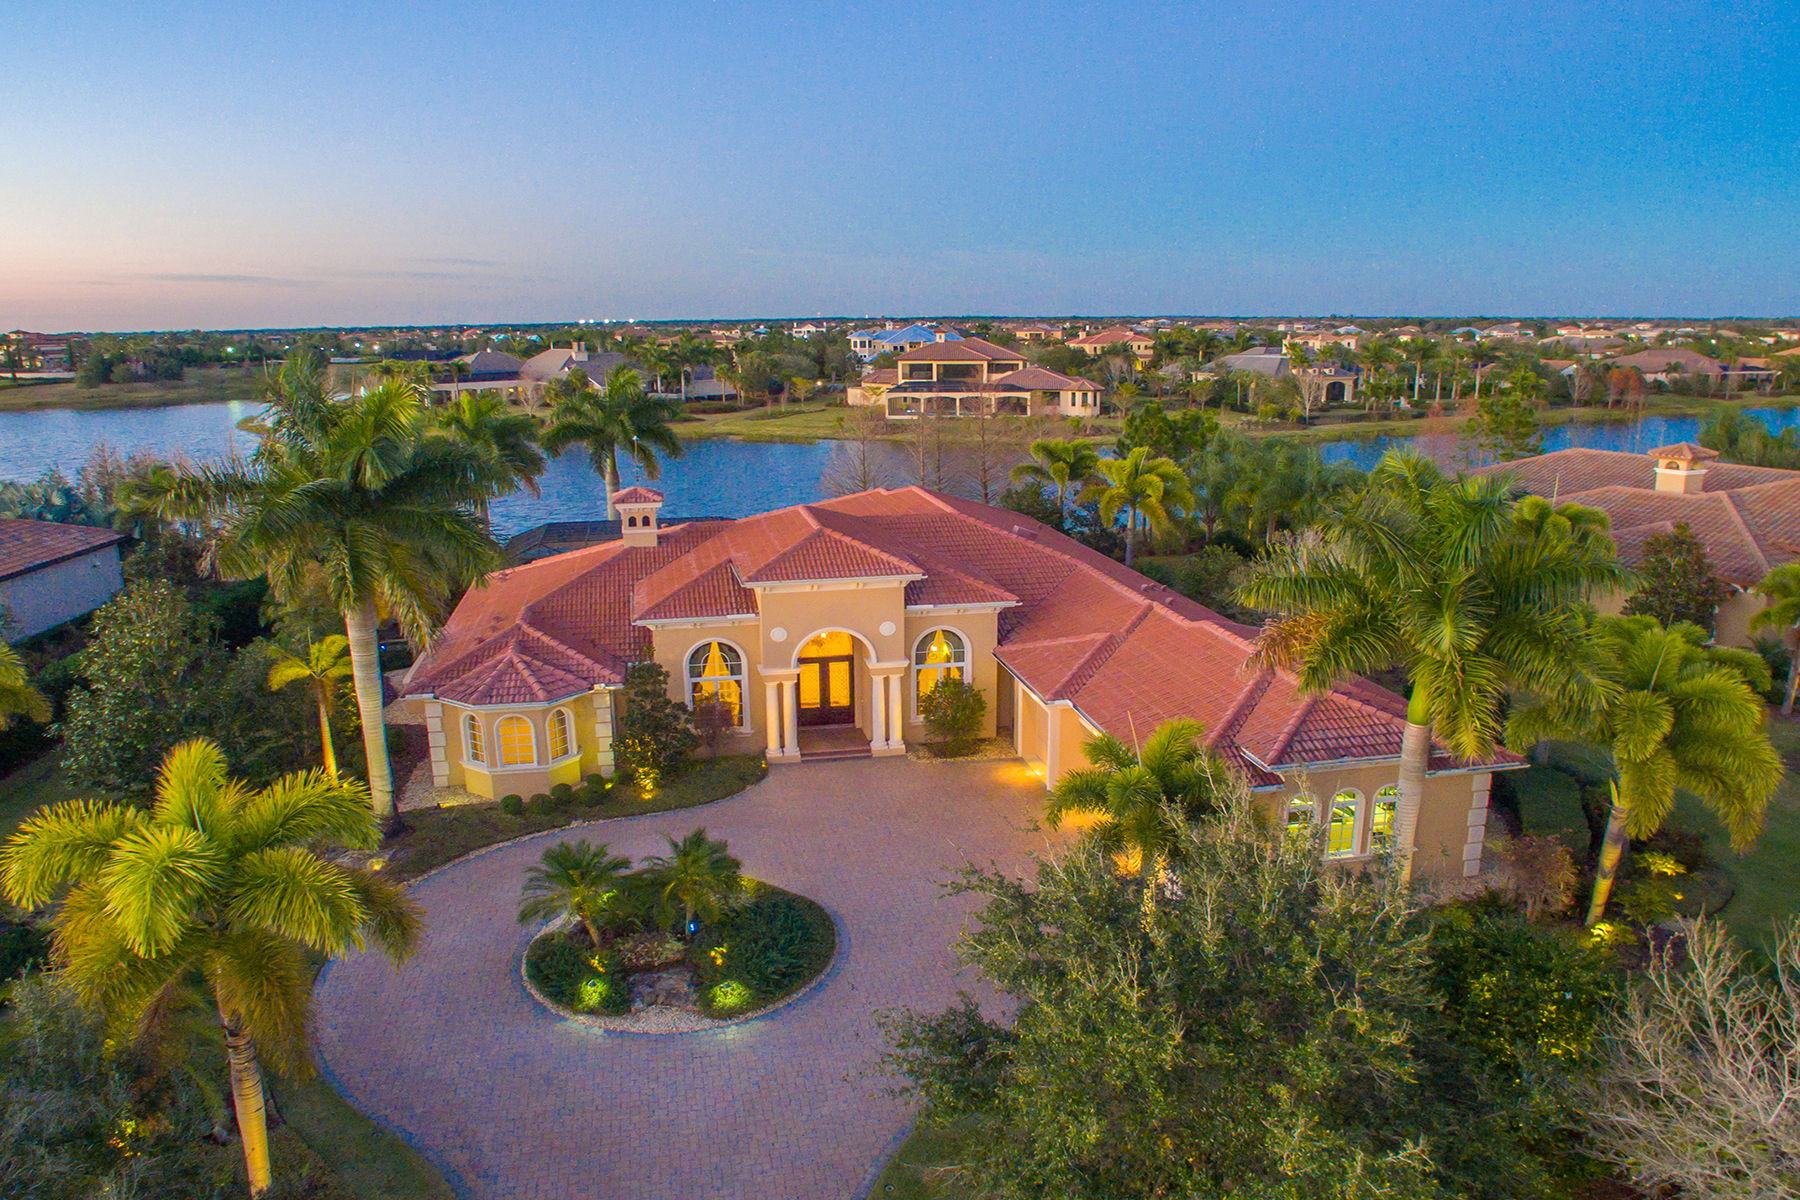 Casa para uma família para Venda às LAKEWOOD RANCH - THE LAKE CLUB 15907 Baycross Dr Lakewood Ranch, Florida, 34202 Estados Unidos